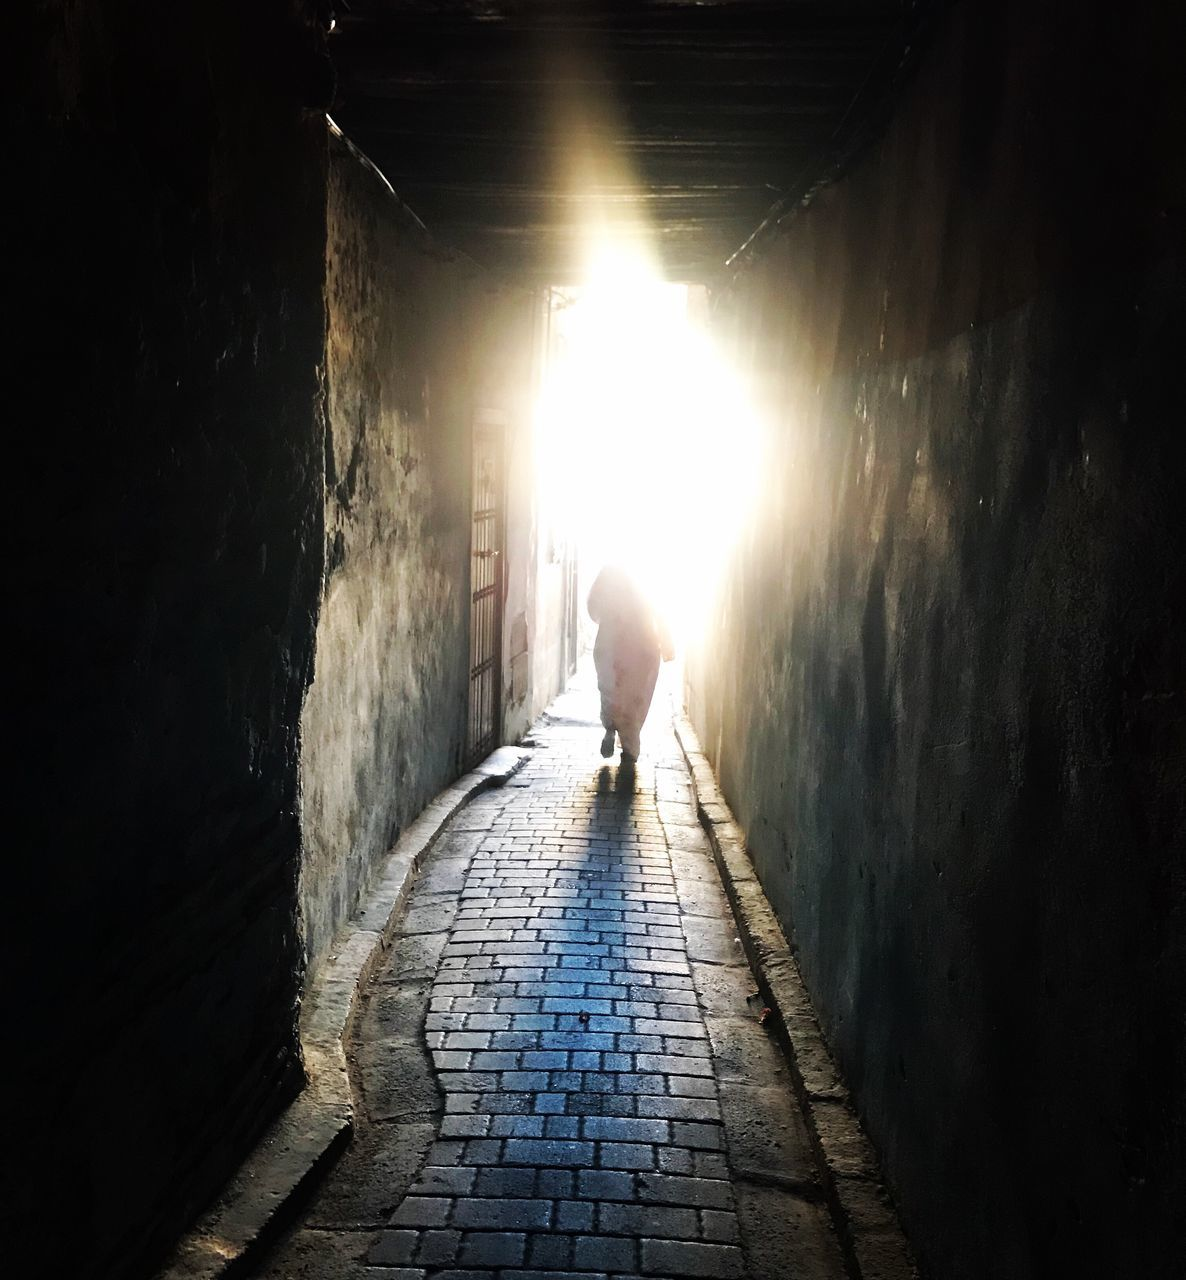 architecture, tunnel, the way forward, direction, one person, full length, wall - building feature, real people, built structure, lifestyles, light at the end of the tunnel, rear view, sunlight, men, walking, day, footpath, wall, leisure activity, outdoors, paving stone, alley, stone wall